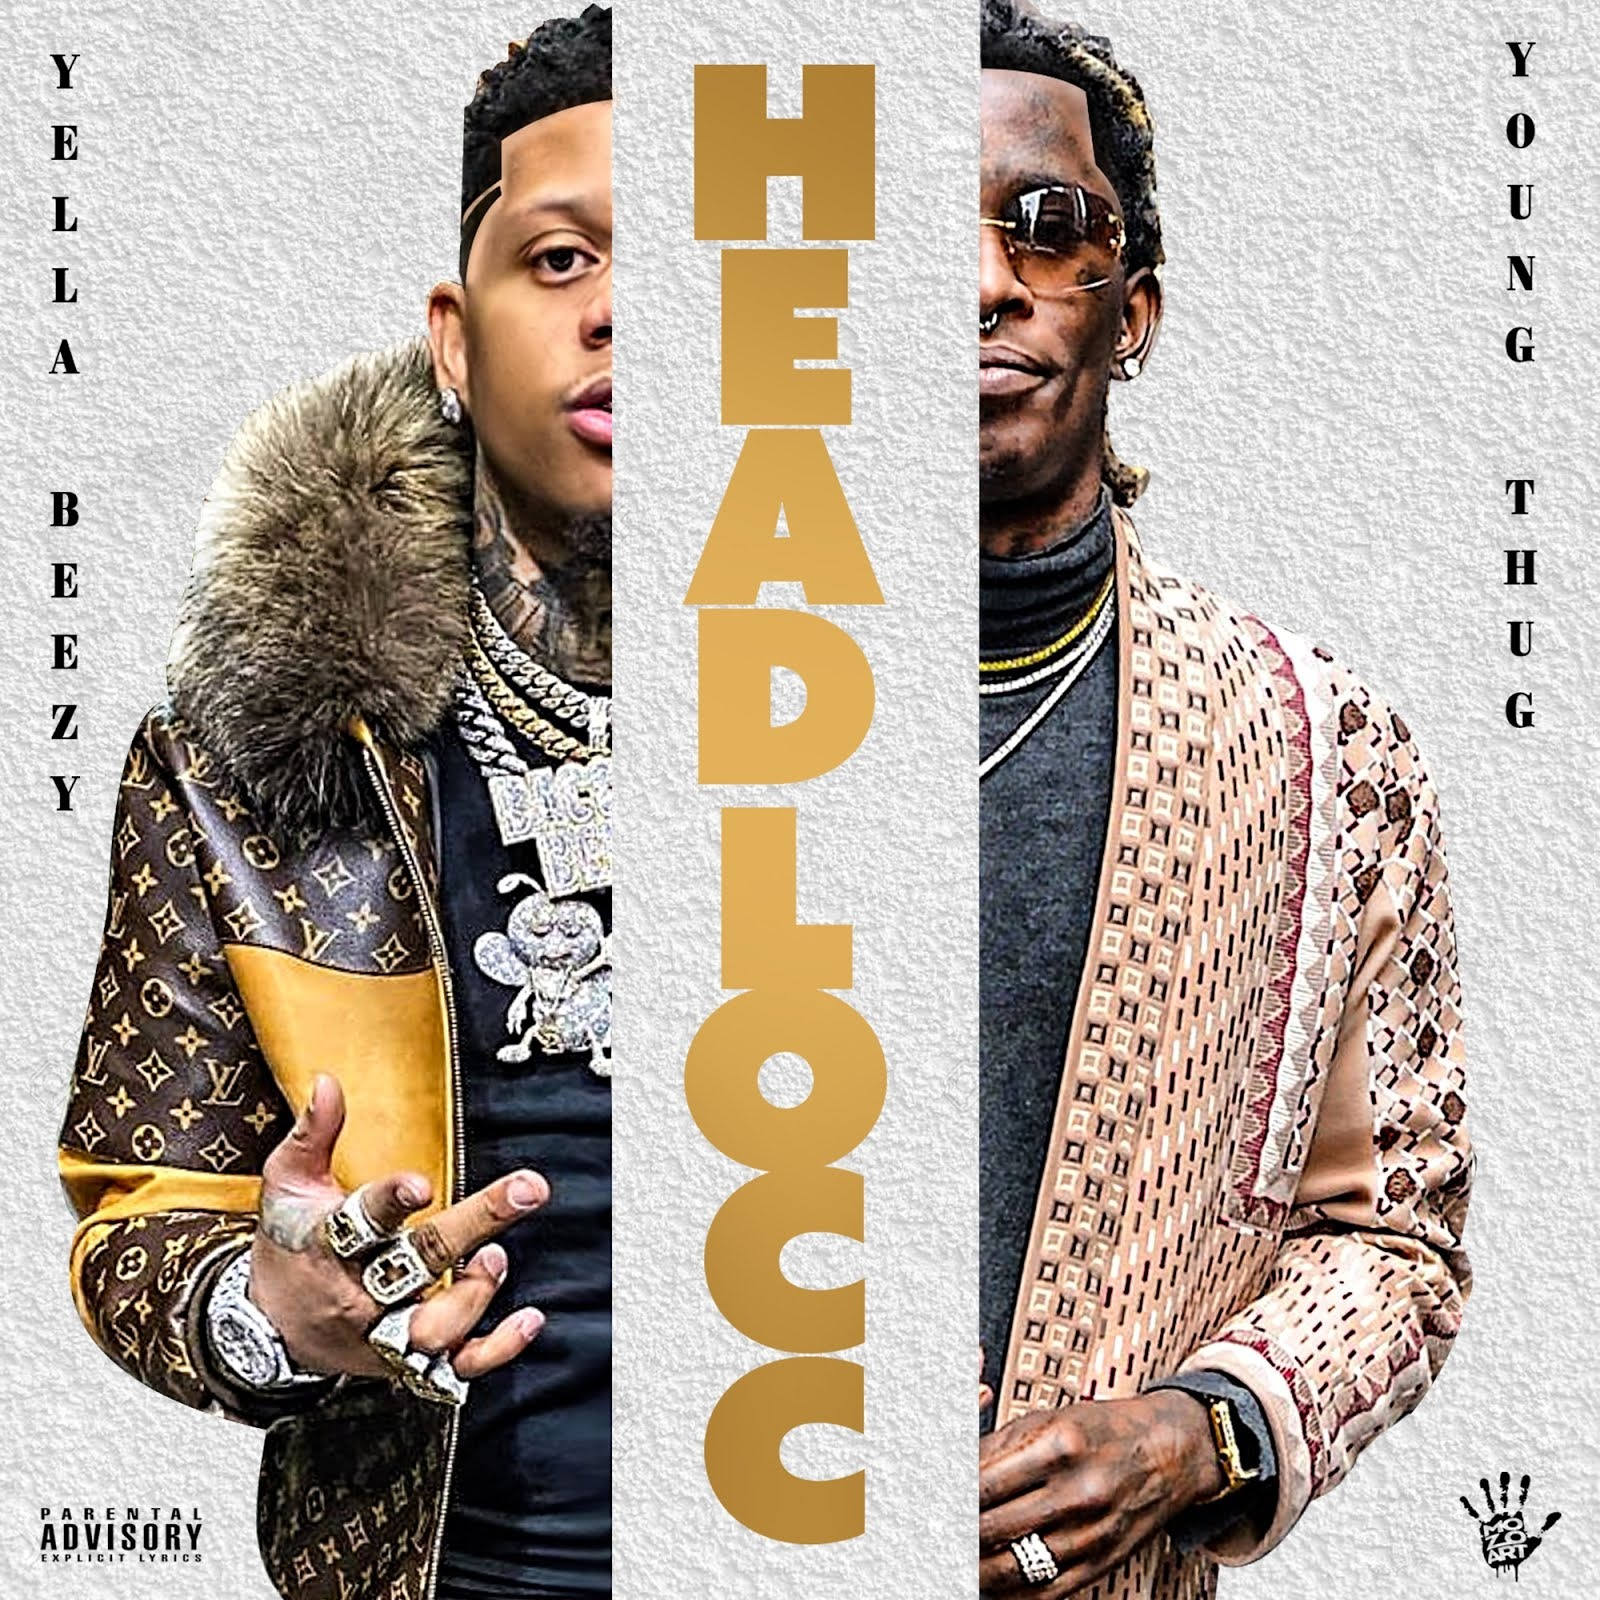 New Single: Yella Beezy – Headlocc (feat. Young Thug)